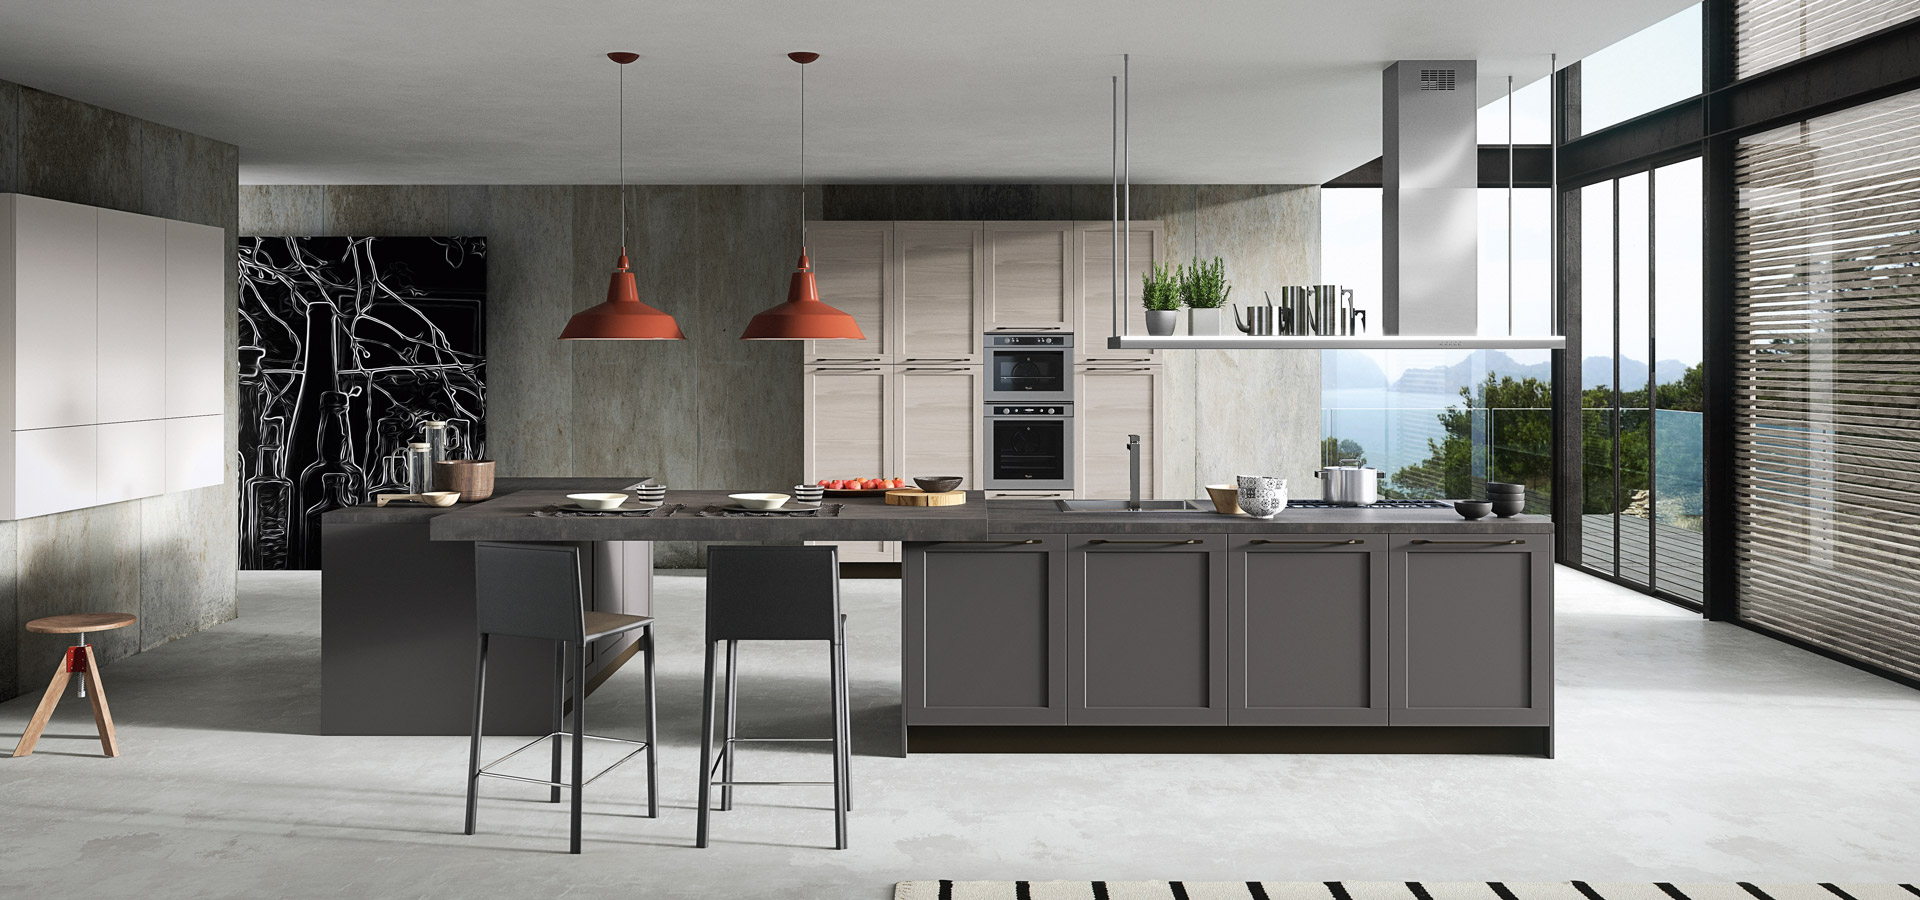 nowadays, mixing door finishes is very much part of a shaker styled kitchen…